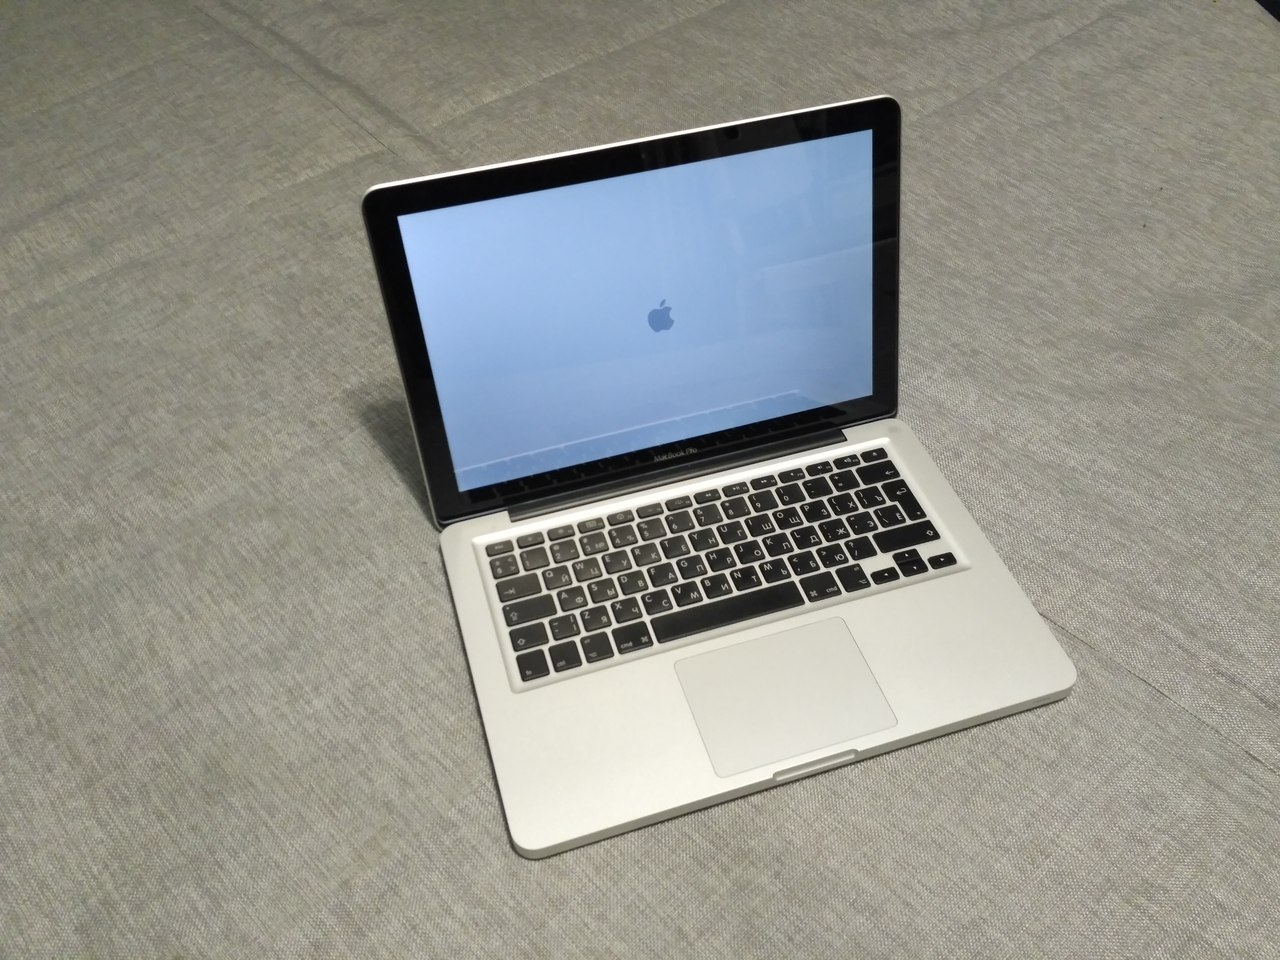 Продаю MacBook Pro MB990 unibody (mid 2009)